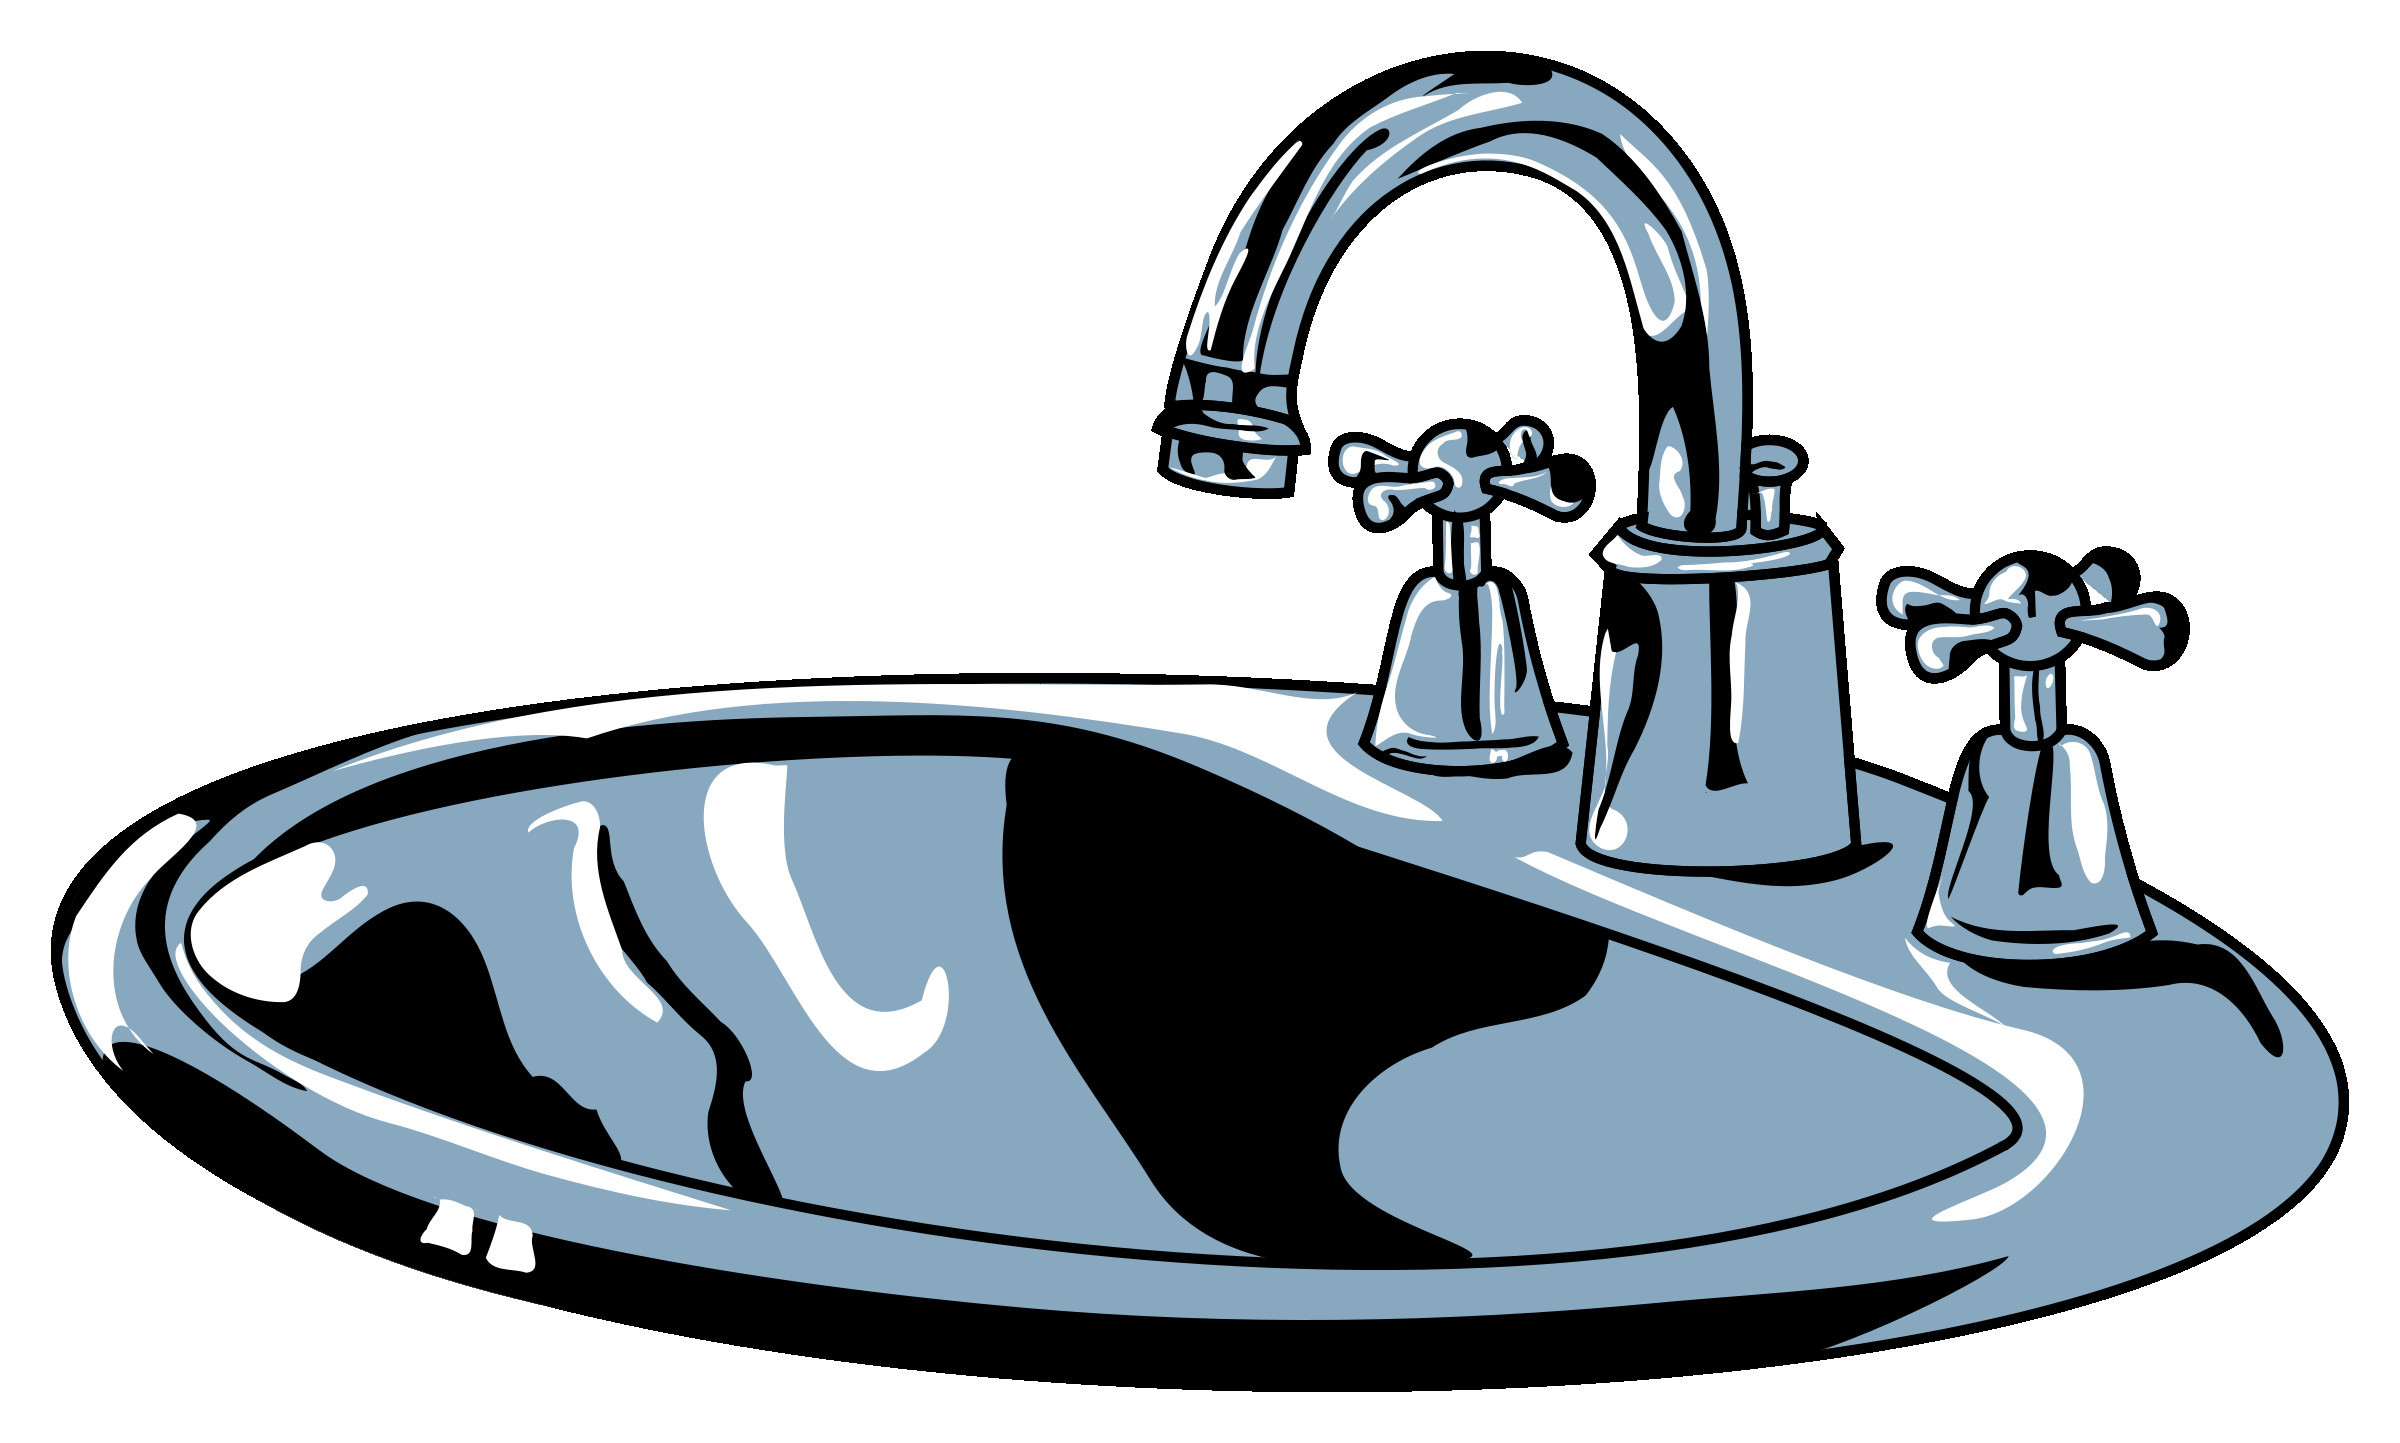 Faucet clipart sink faucet. Black bathroom new clipartuse